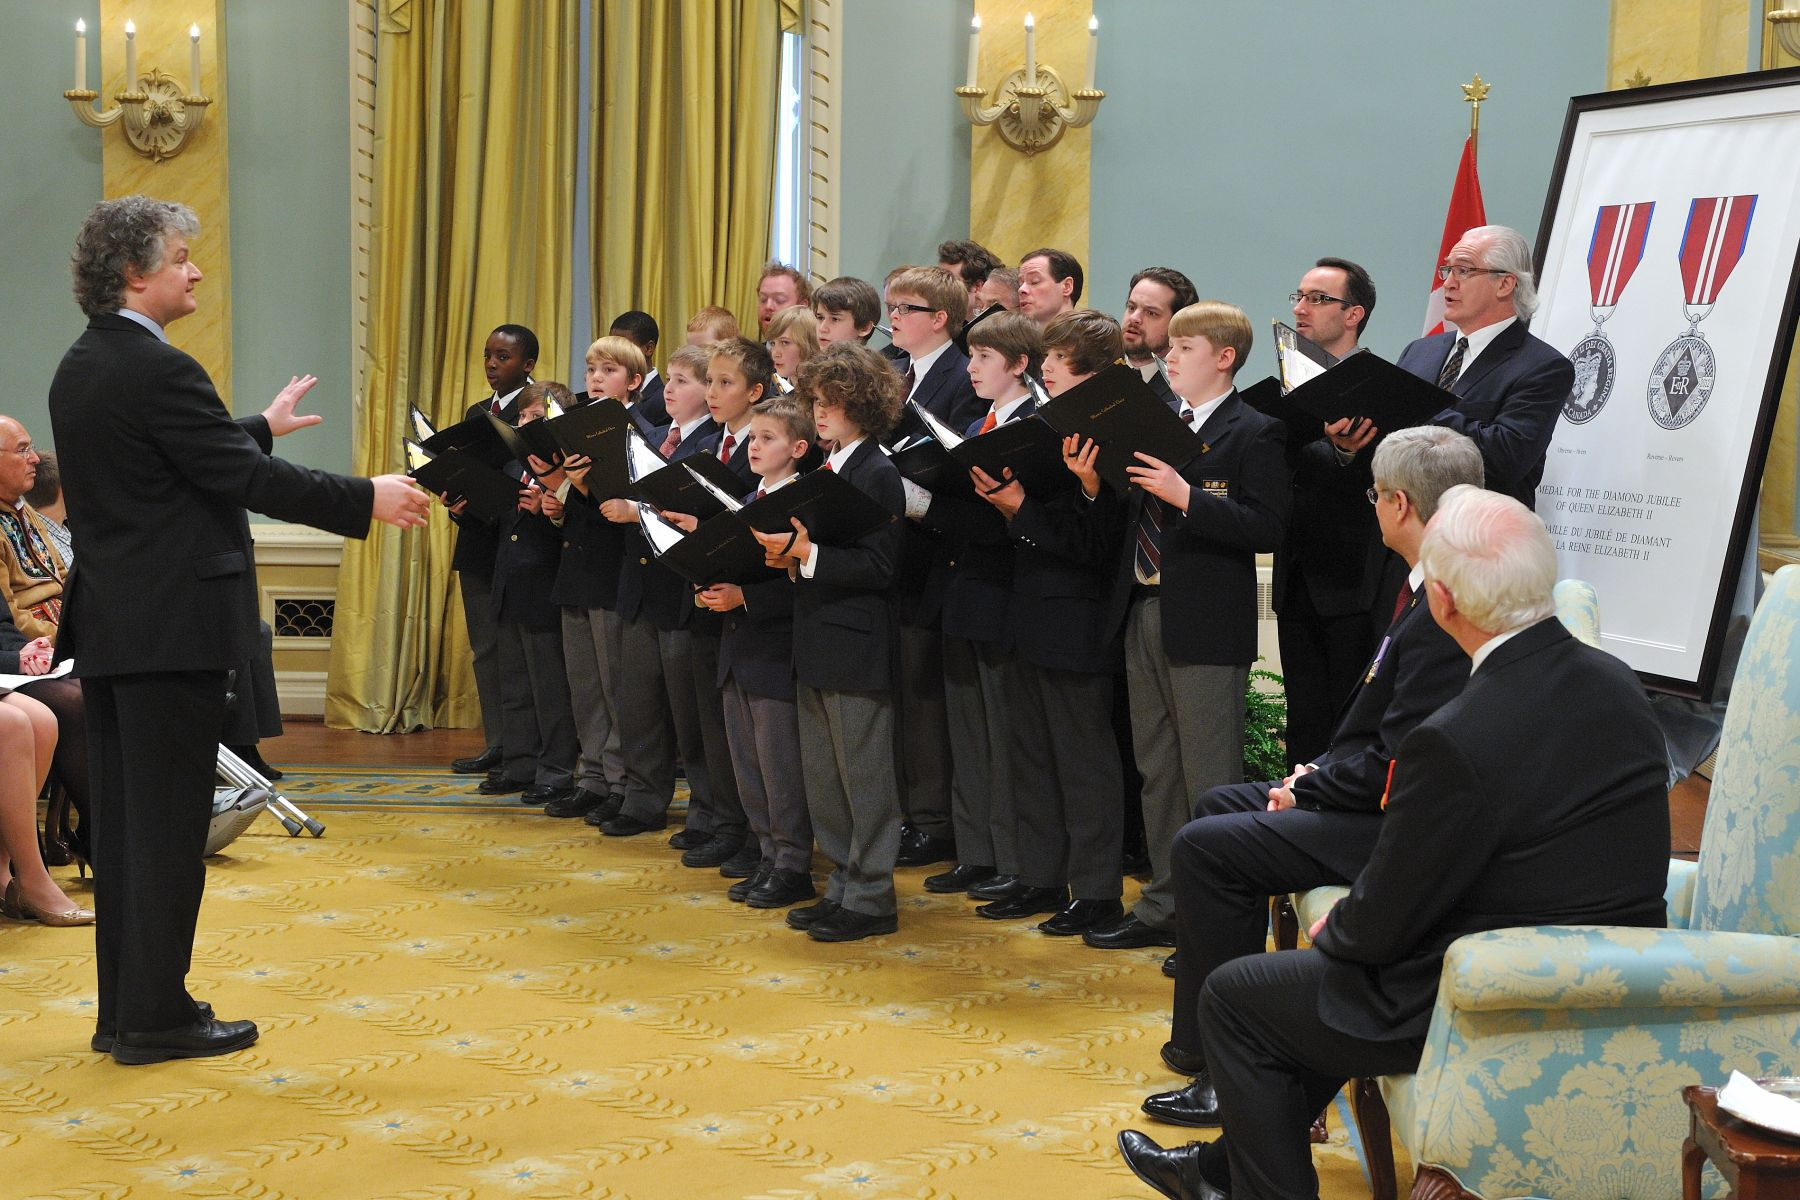 During the ceremony, the Ottawa Cathedral Choir of Men and Boys performed two songs that were also performed during Her Majesty Queen Elizabeth II's coronation ceremony at Westminster Abbey in June 1953.